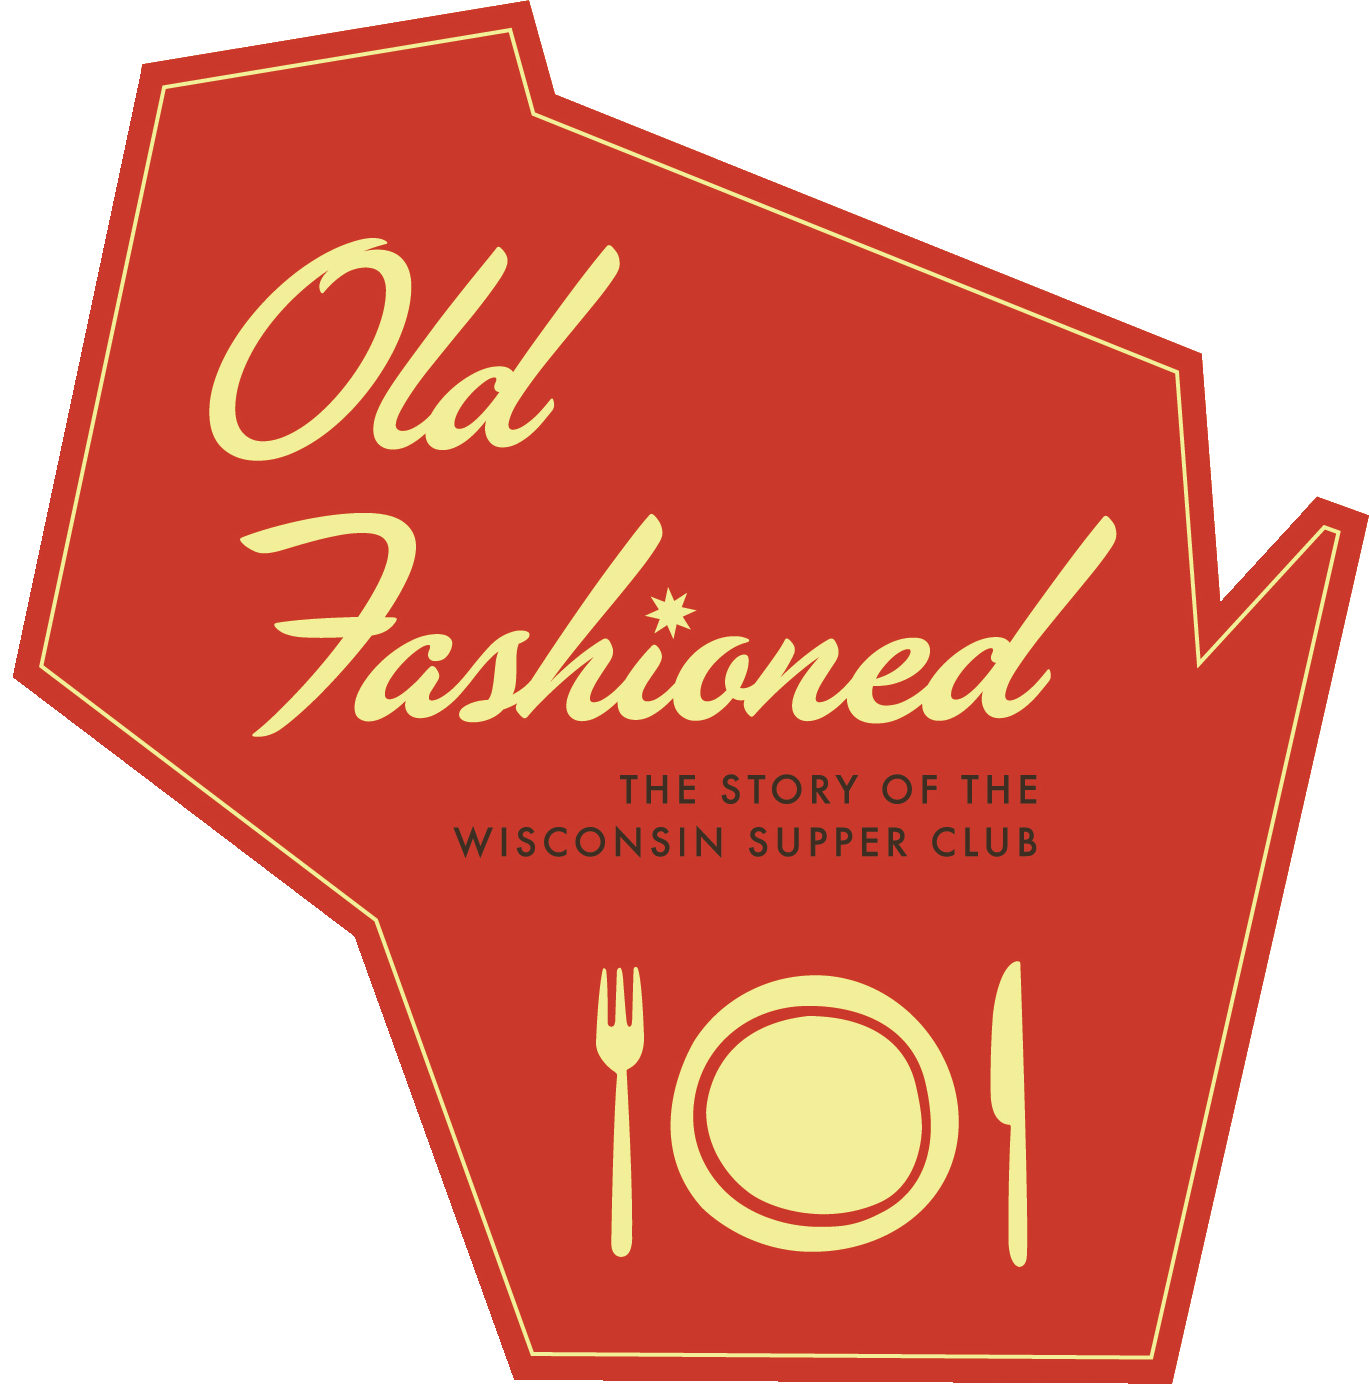 Diner clipart supper. Club list old fashioned